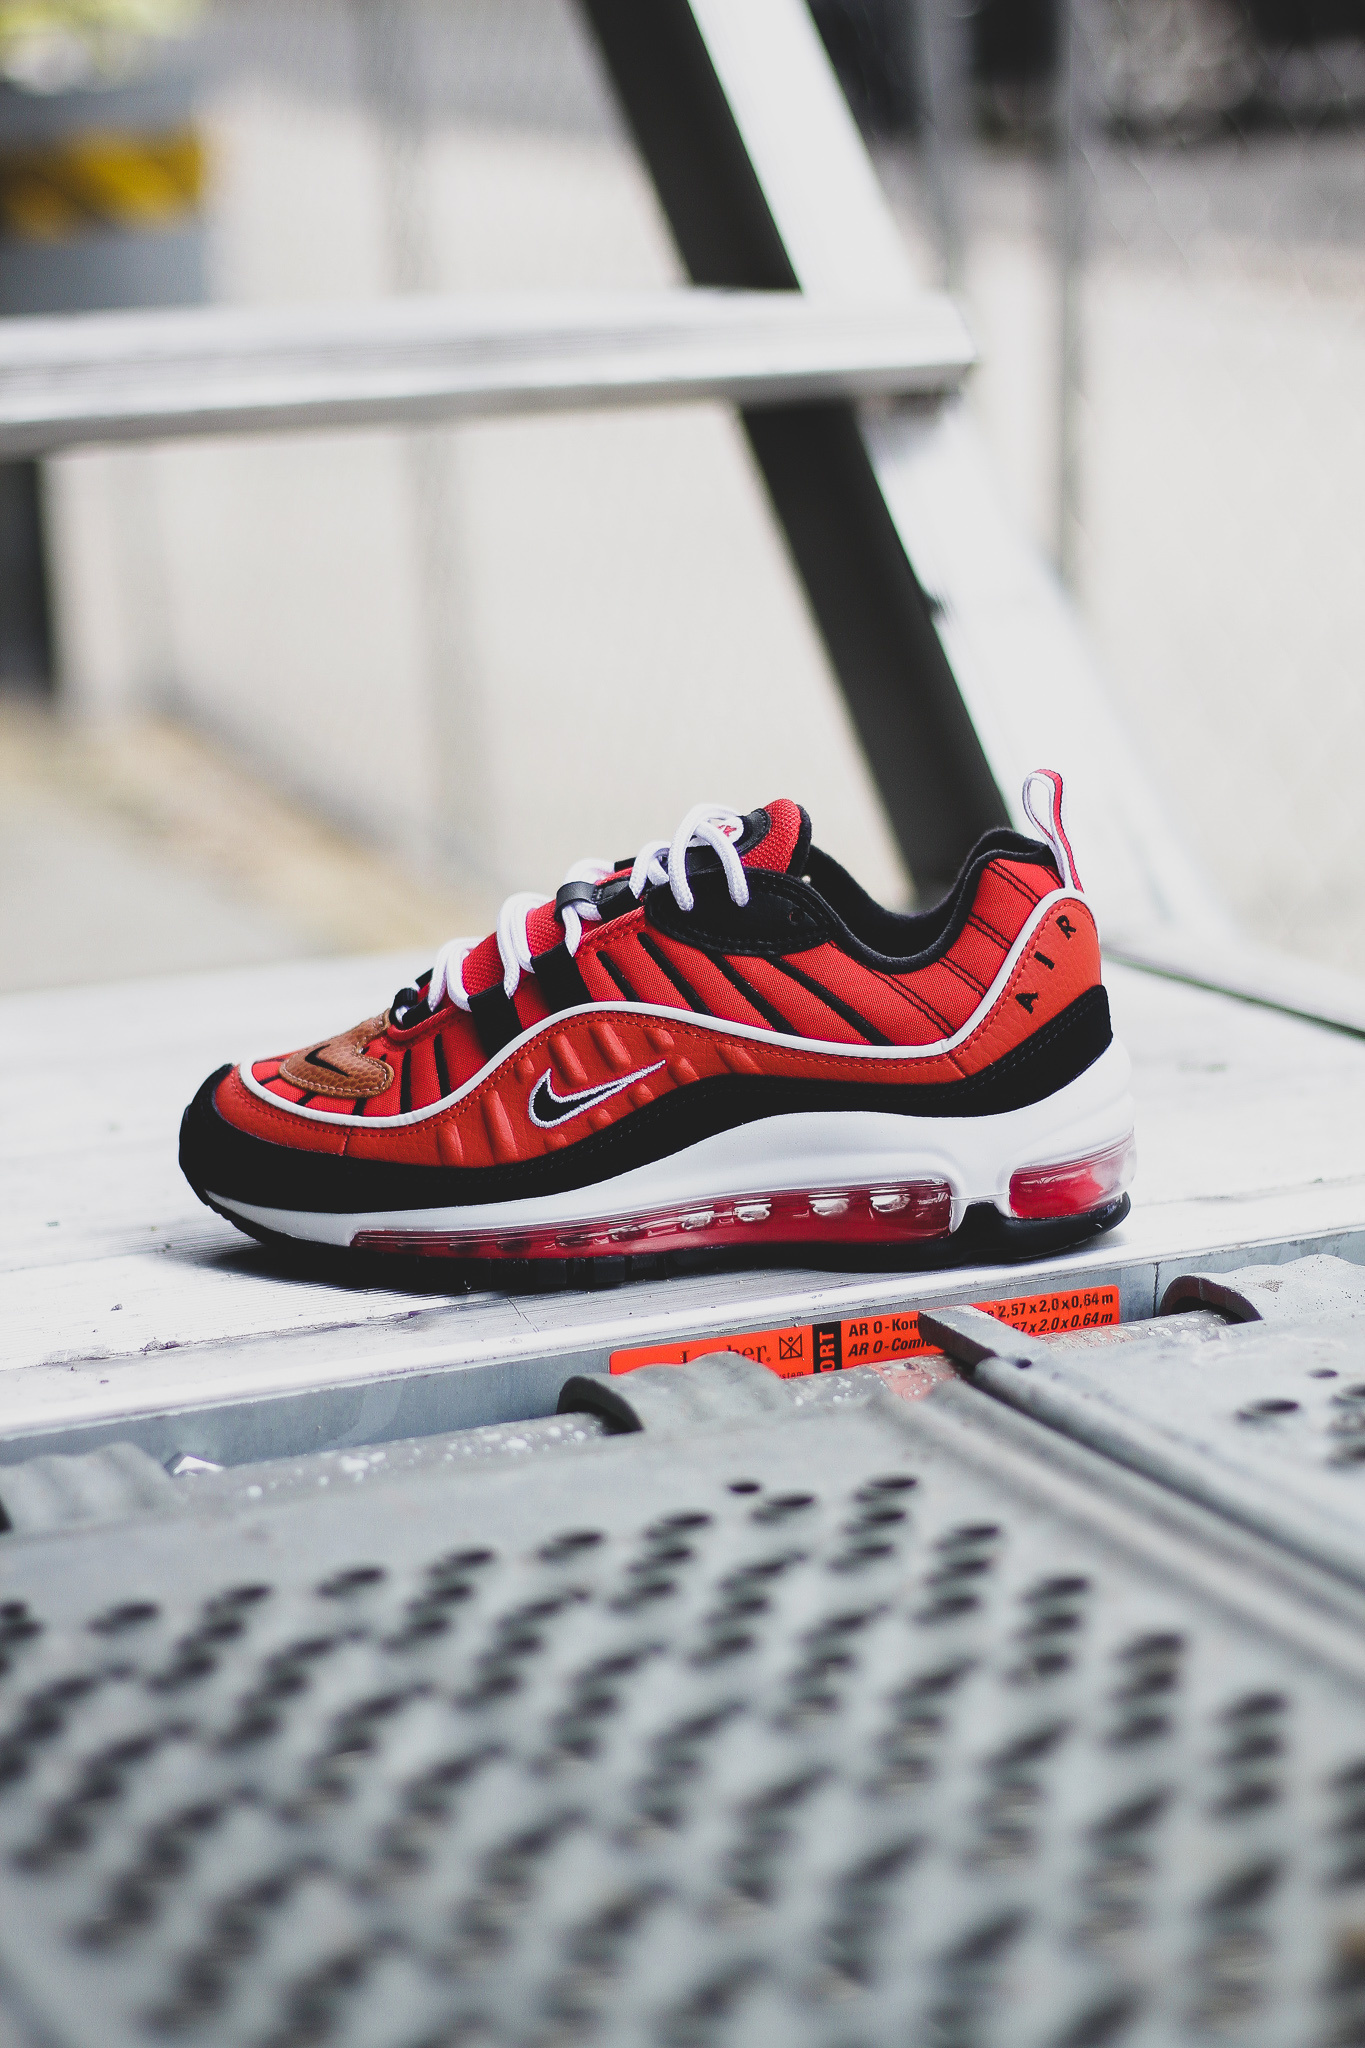 Off White Nike Air Max 98 Black Red White